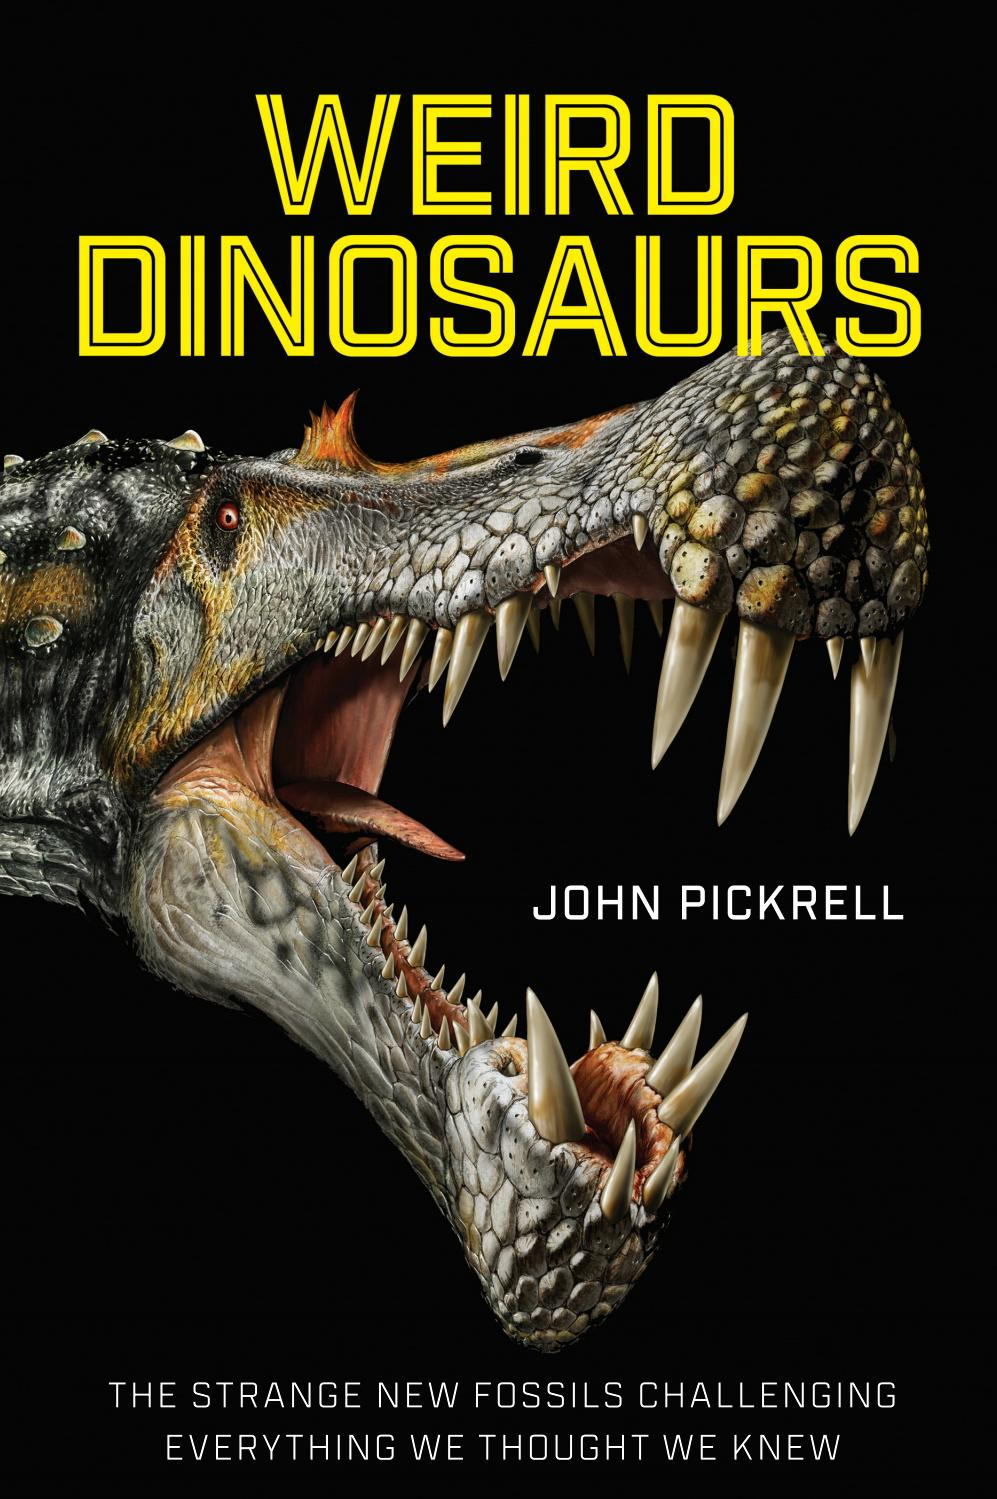 Libro De Jurassic Park A New Golden Age For Dinosaur Science By Columbia University Press